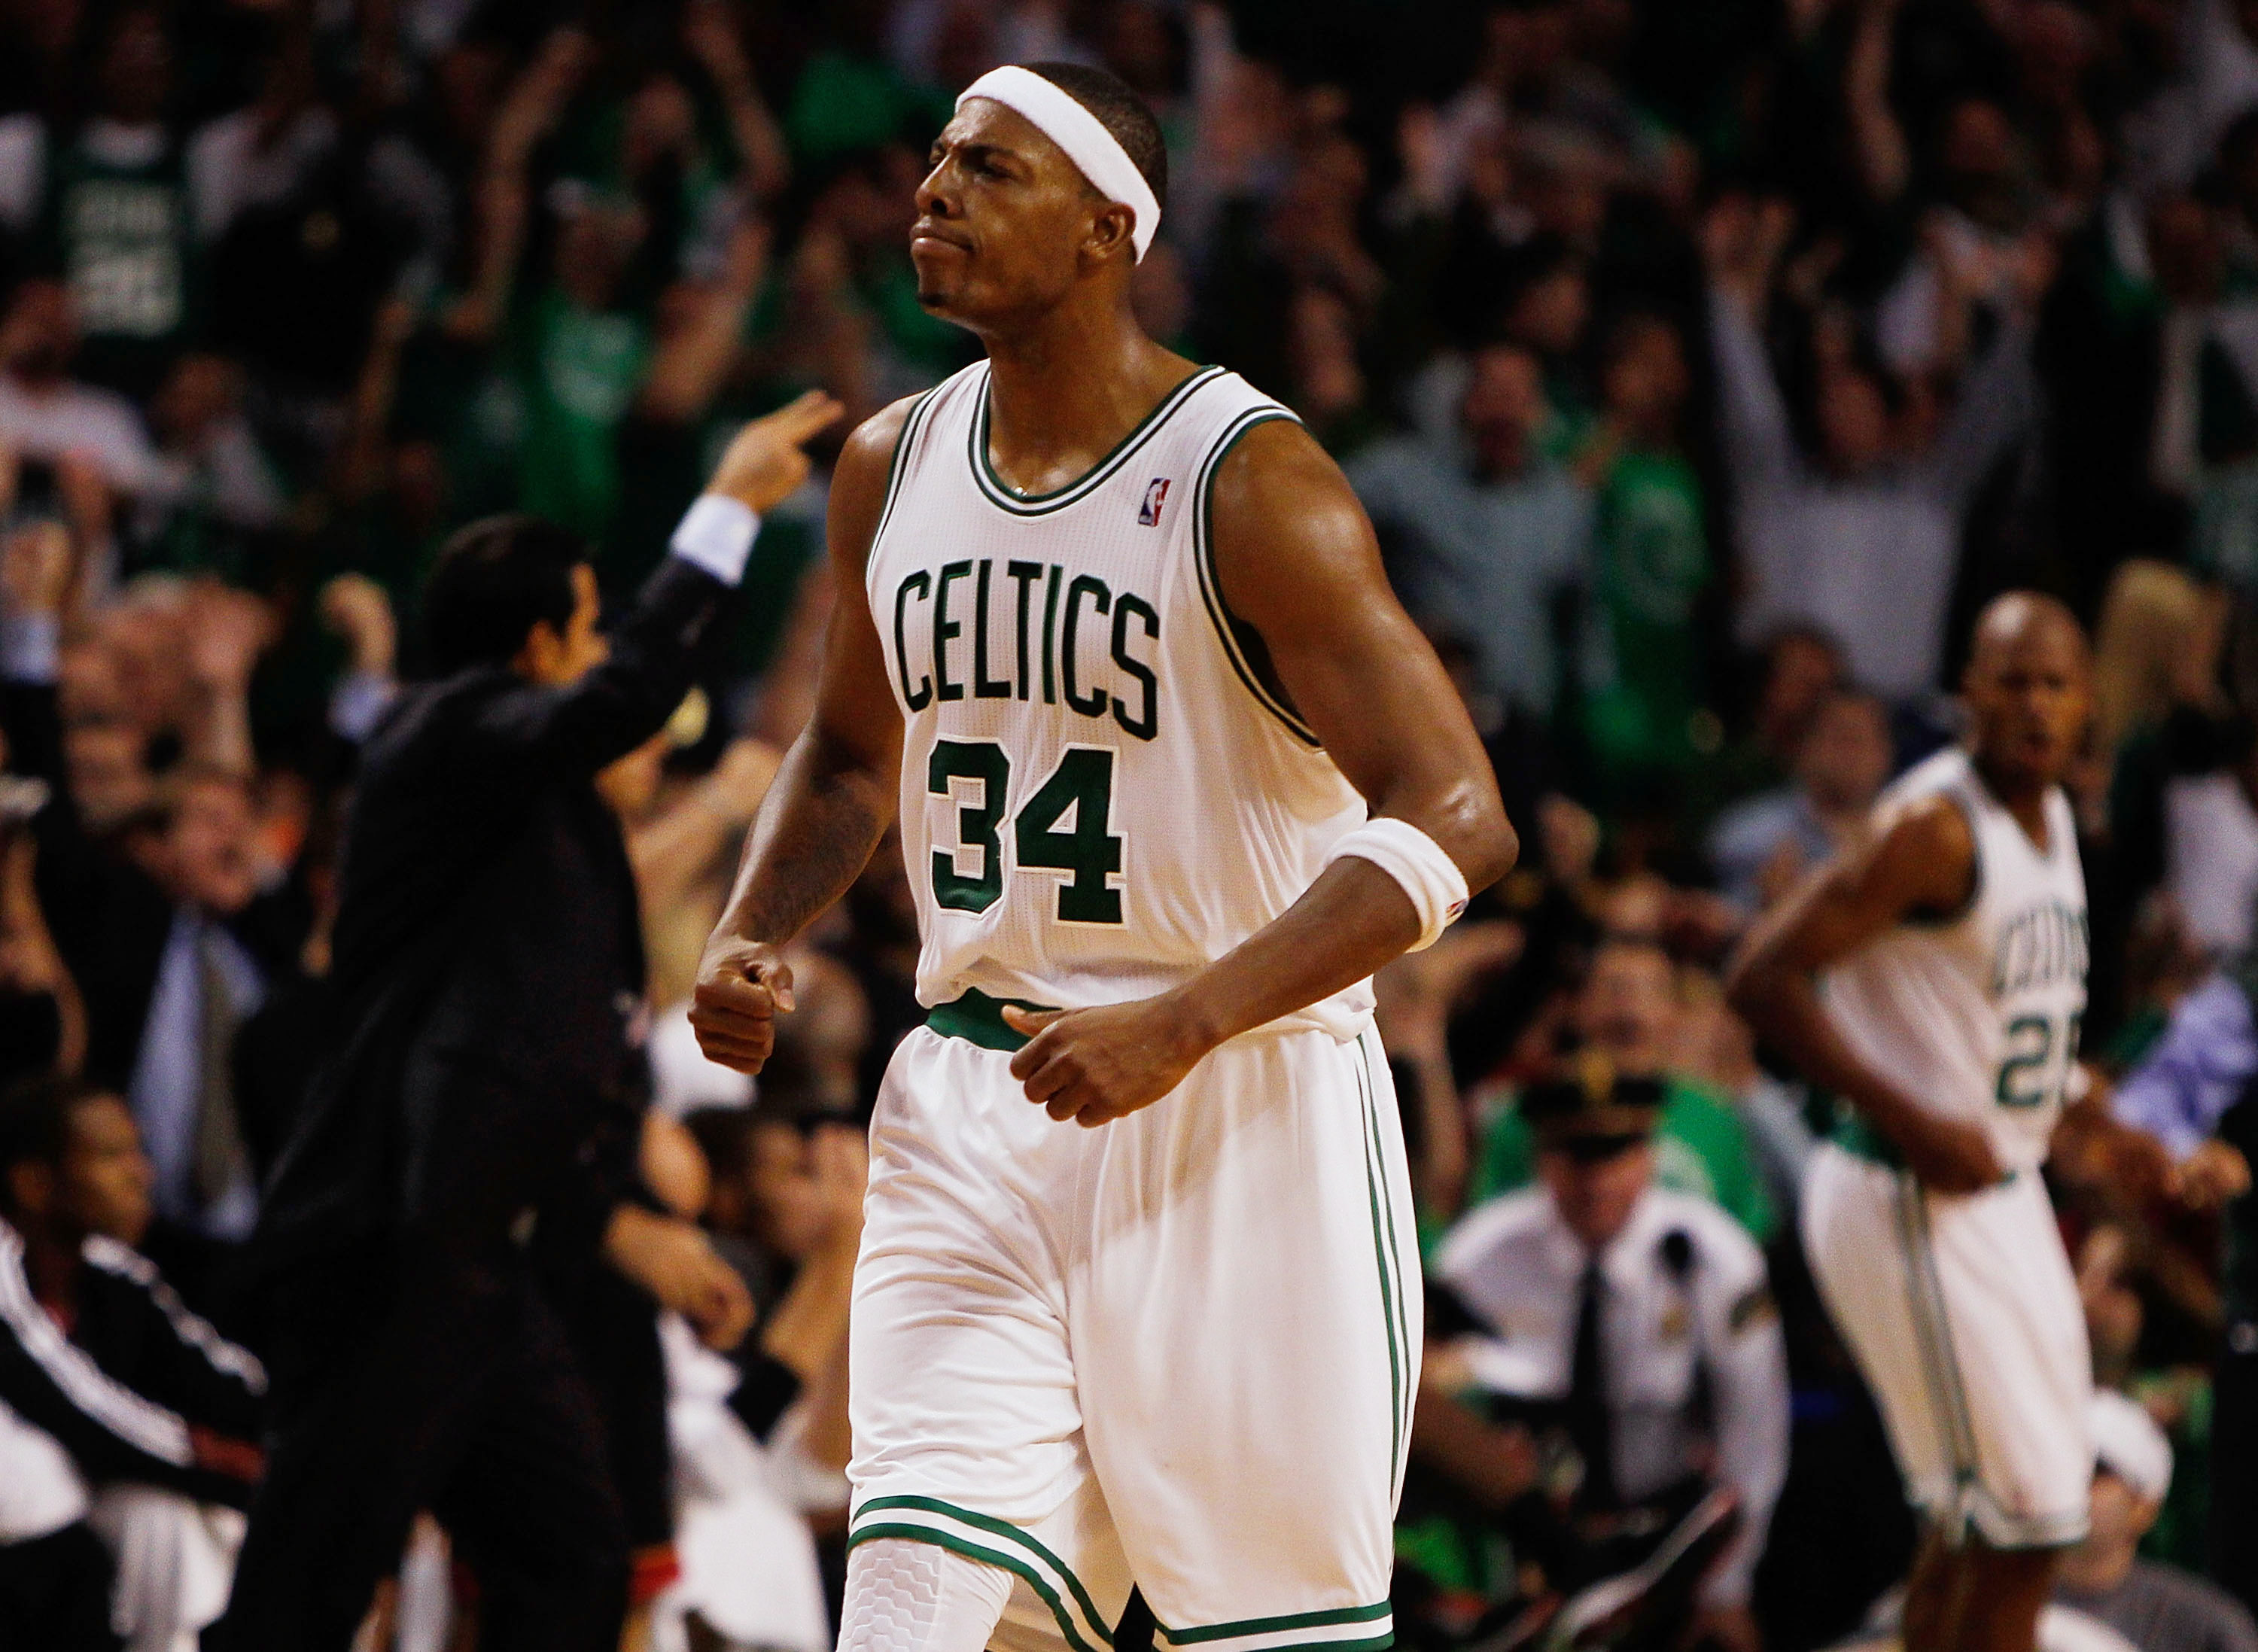 BOSTON, MA - OCTOBER 26:  Paul Pierce #34 of the Boston Celtics reacts after teammate Ray Allen #20 shoot a three-point basket during a game against the Miami Heat at the TD Banknorth Garden on October 26, 2010 in Boston, Massachusetts. NOTE TO USER: User